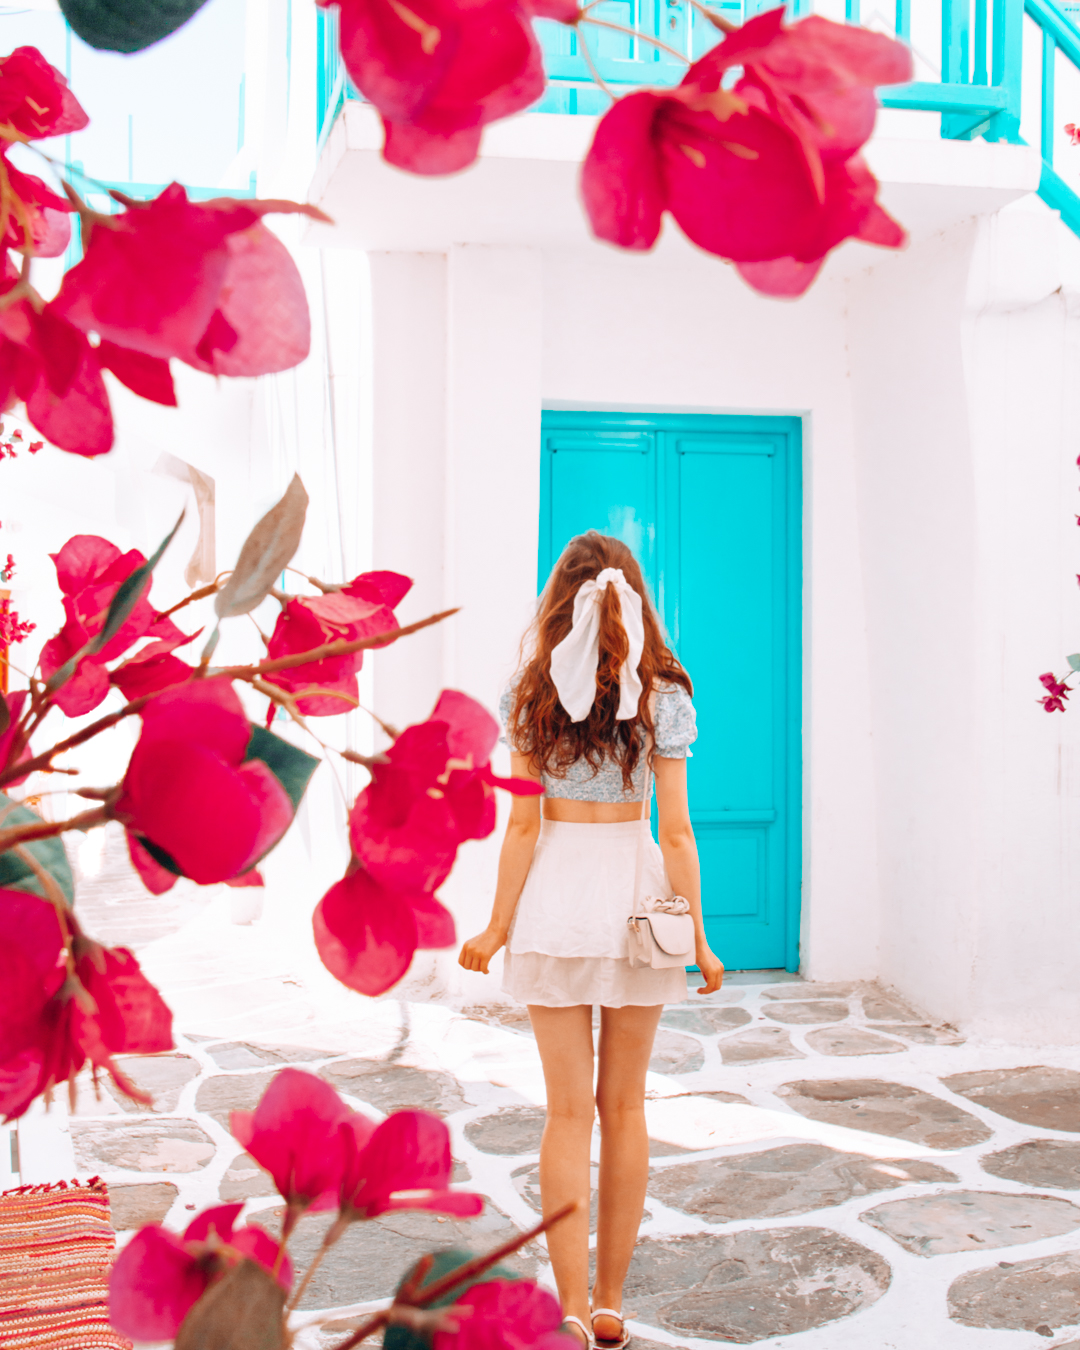 Flowers, a girl, and a blue door in Mykonos